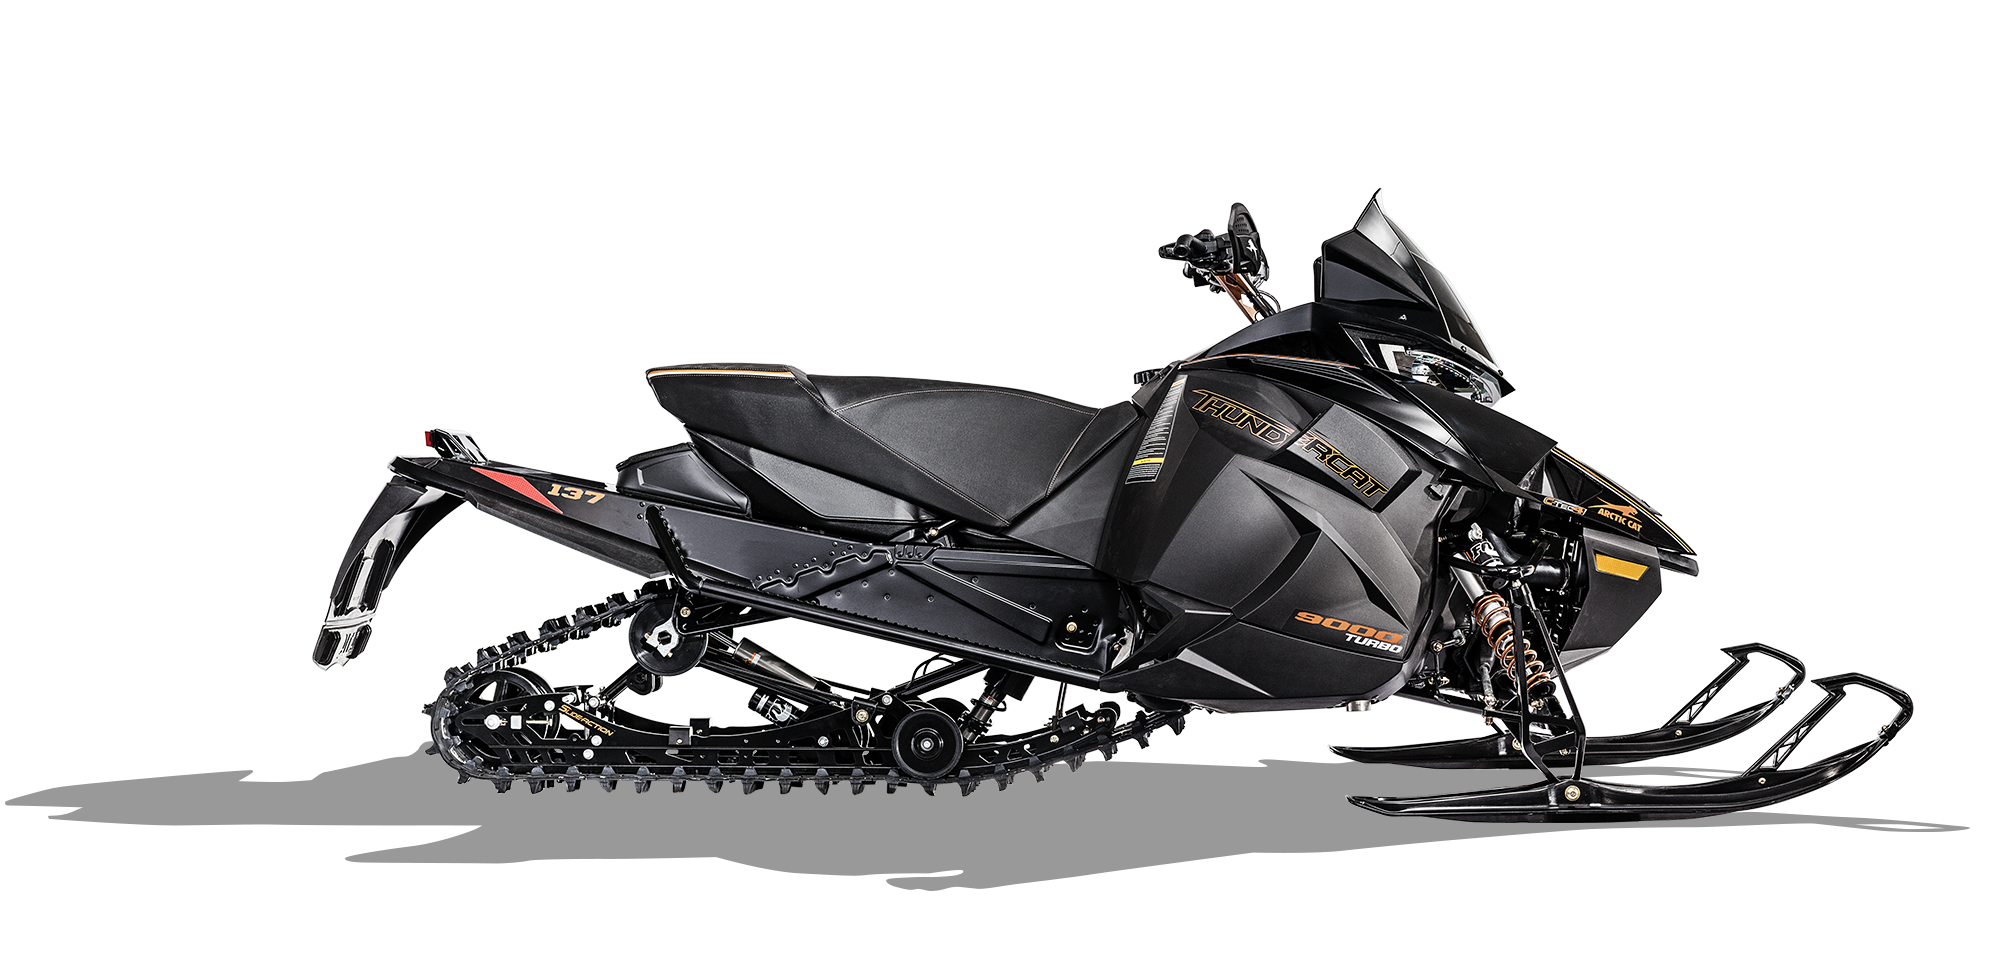 Artic cat snowmobile clipart black and white image black and white Arctic Cat Snowmobile image black and white